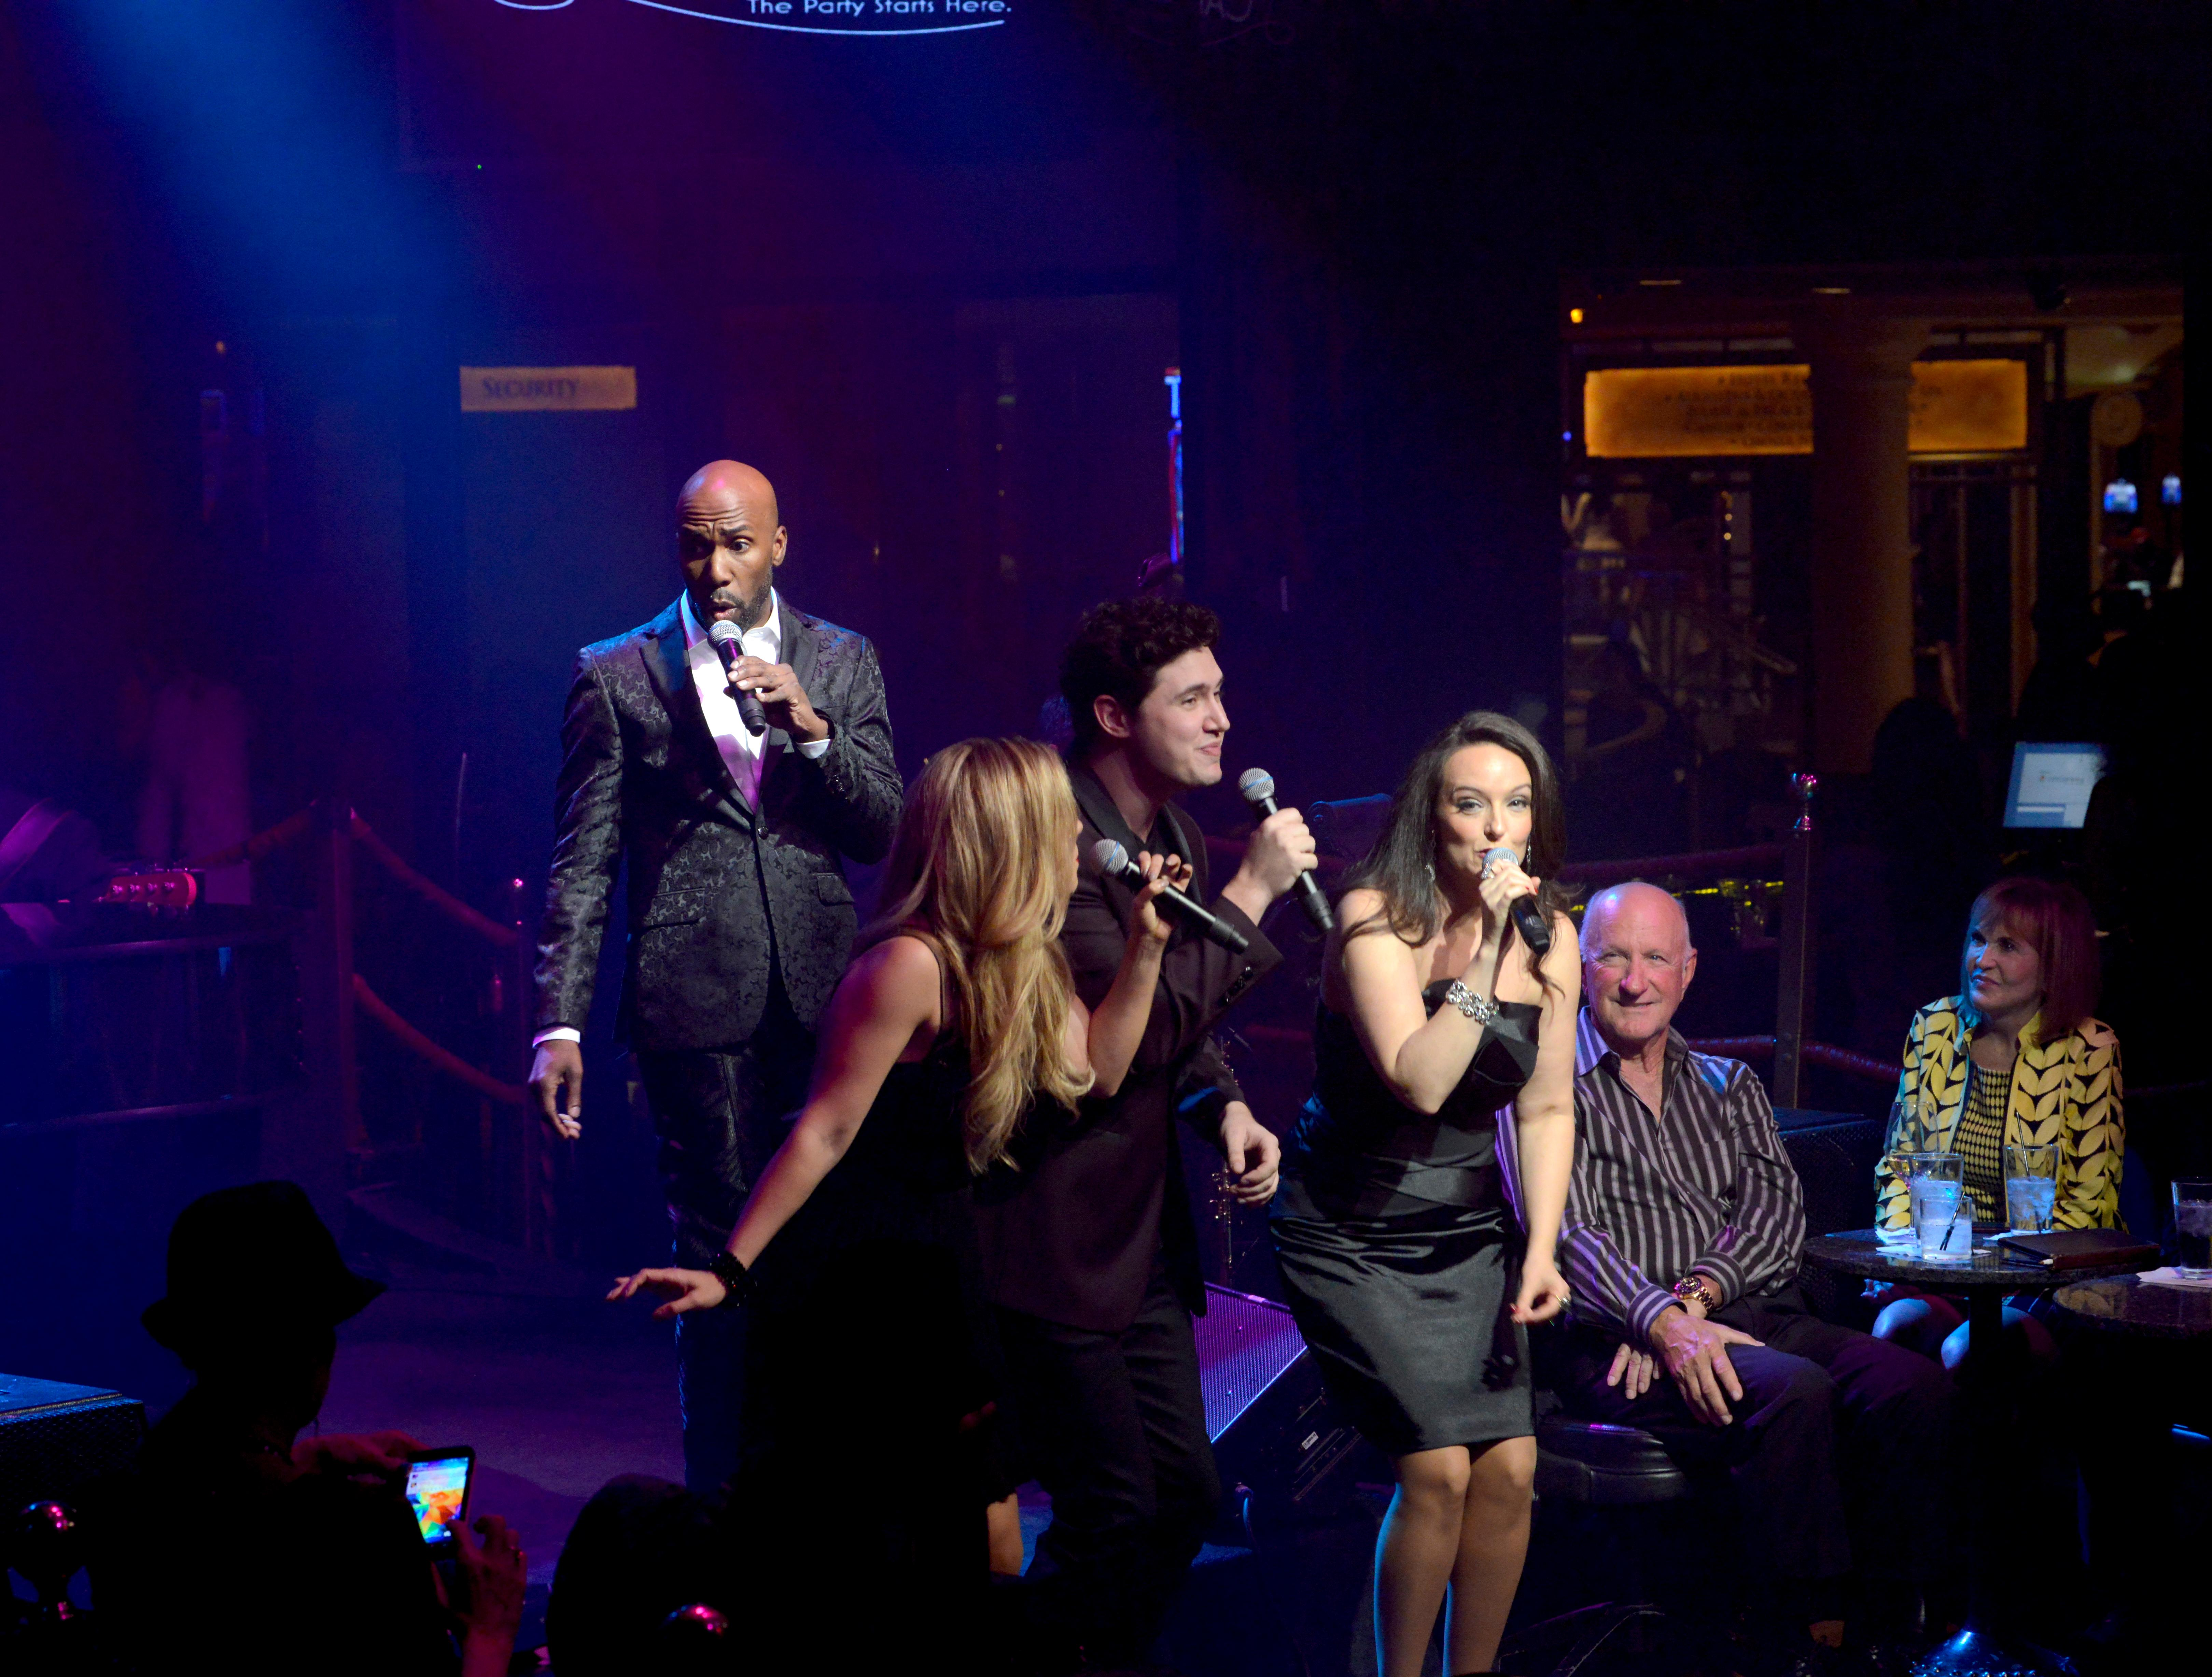 "The cast performs vintage Vegas cabaret-style during the opening night of the musical review ""The Cocktail Cabaret"" at Cleopatra's Barge in Caesars Palace Hotel & Casino. The cast (l-r): Eric Jordan Young, Daniel Emmet, Maren Wade, Daniel Emmet, and Niki Scalera. Thursday, November 30, 2017. CREDIT: Glenn Pinkerton/Las Vegas News Bureau"